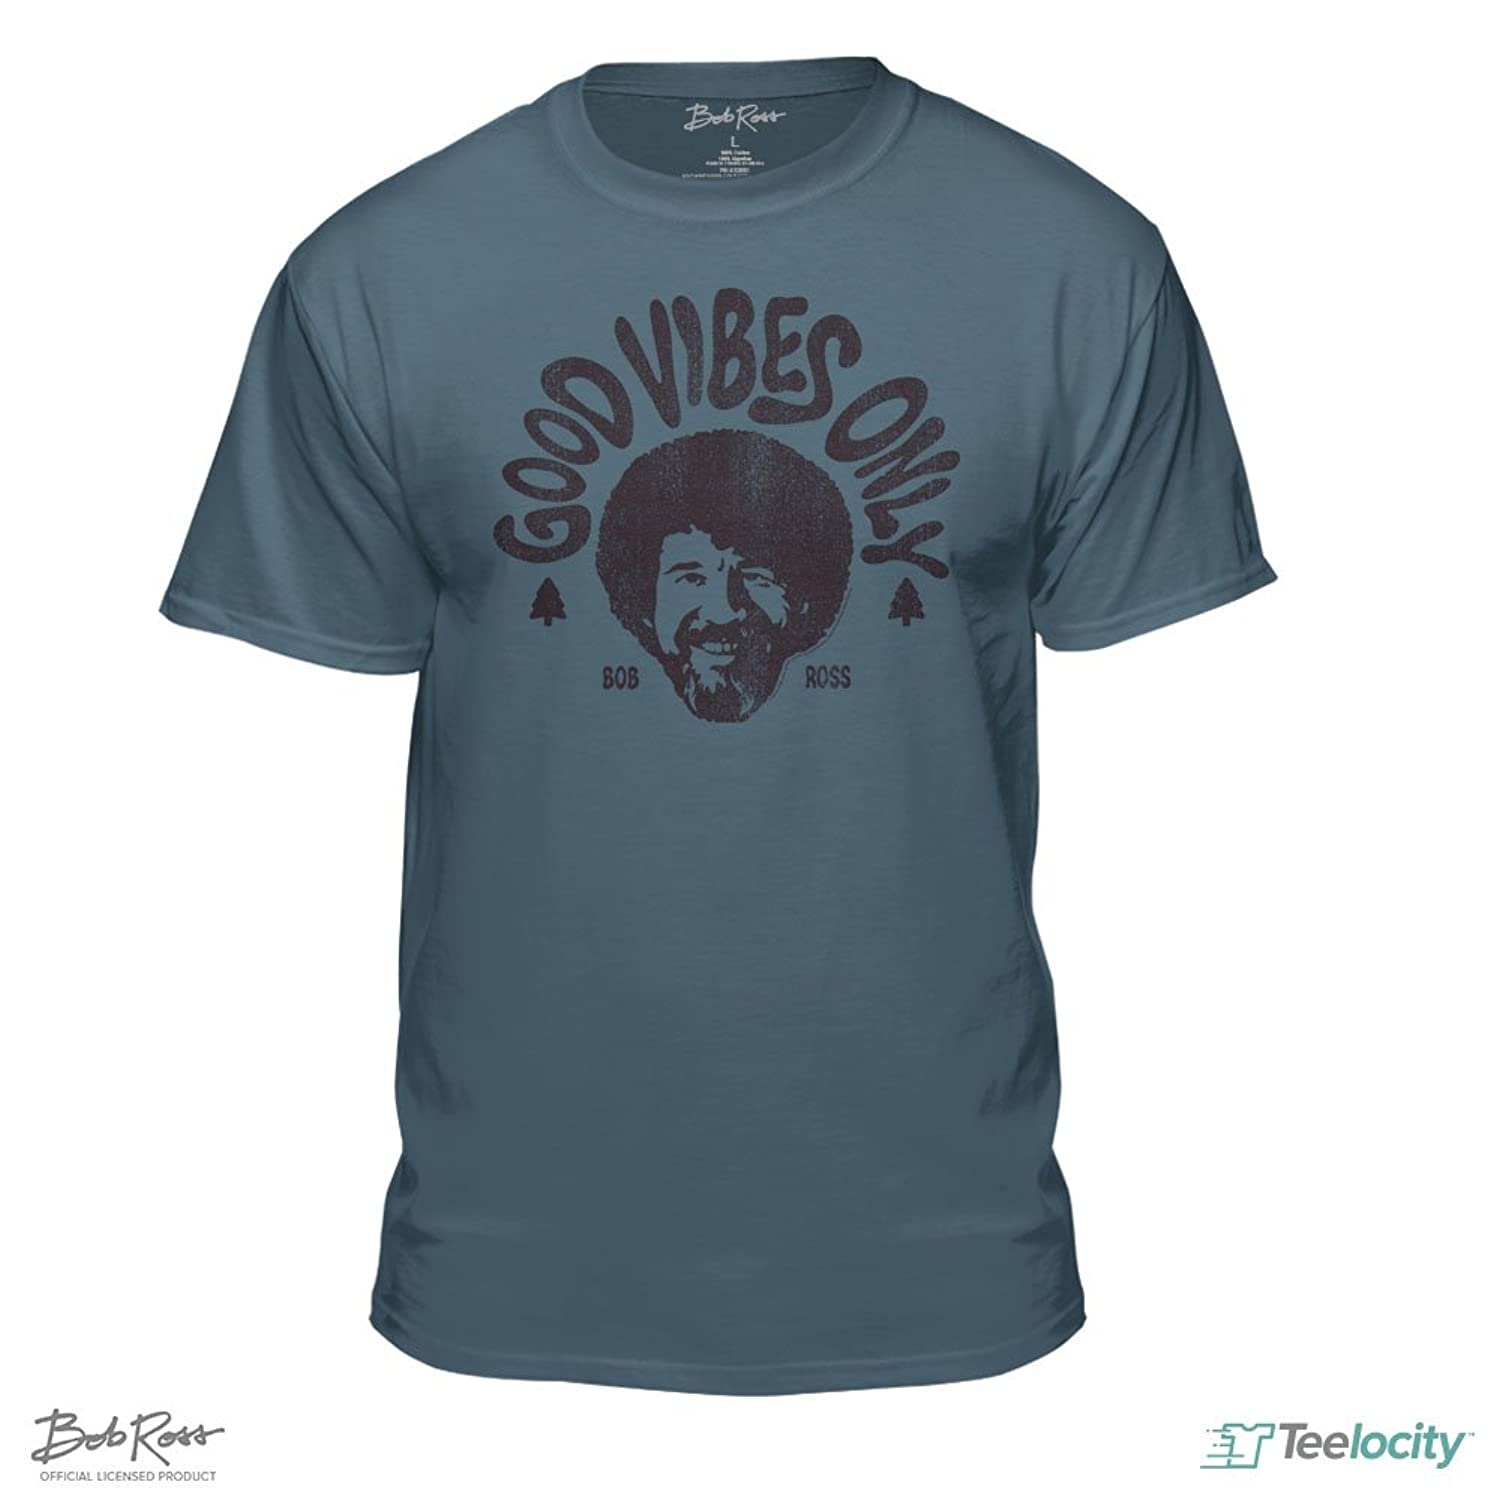 4dd5c740b900 Bob Ross Officially Licensed Well-Designed Funny Artistic Quirky and  Painting T-shirt cheap